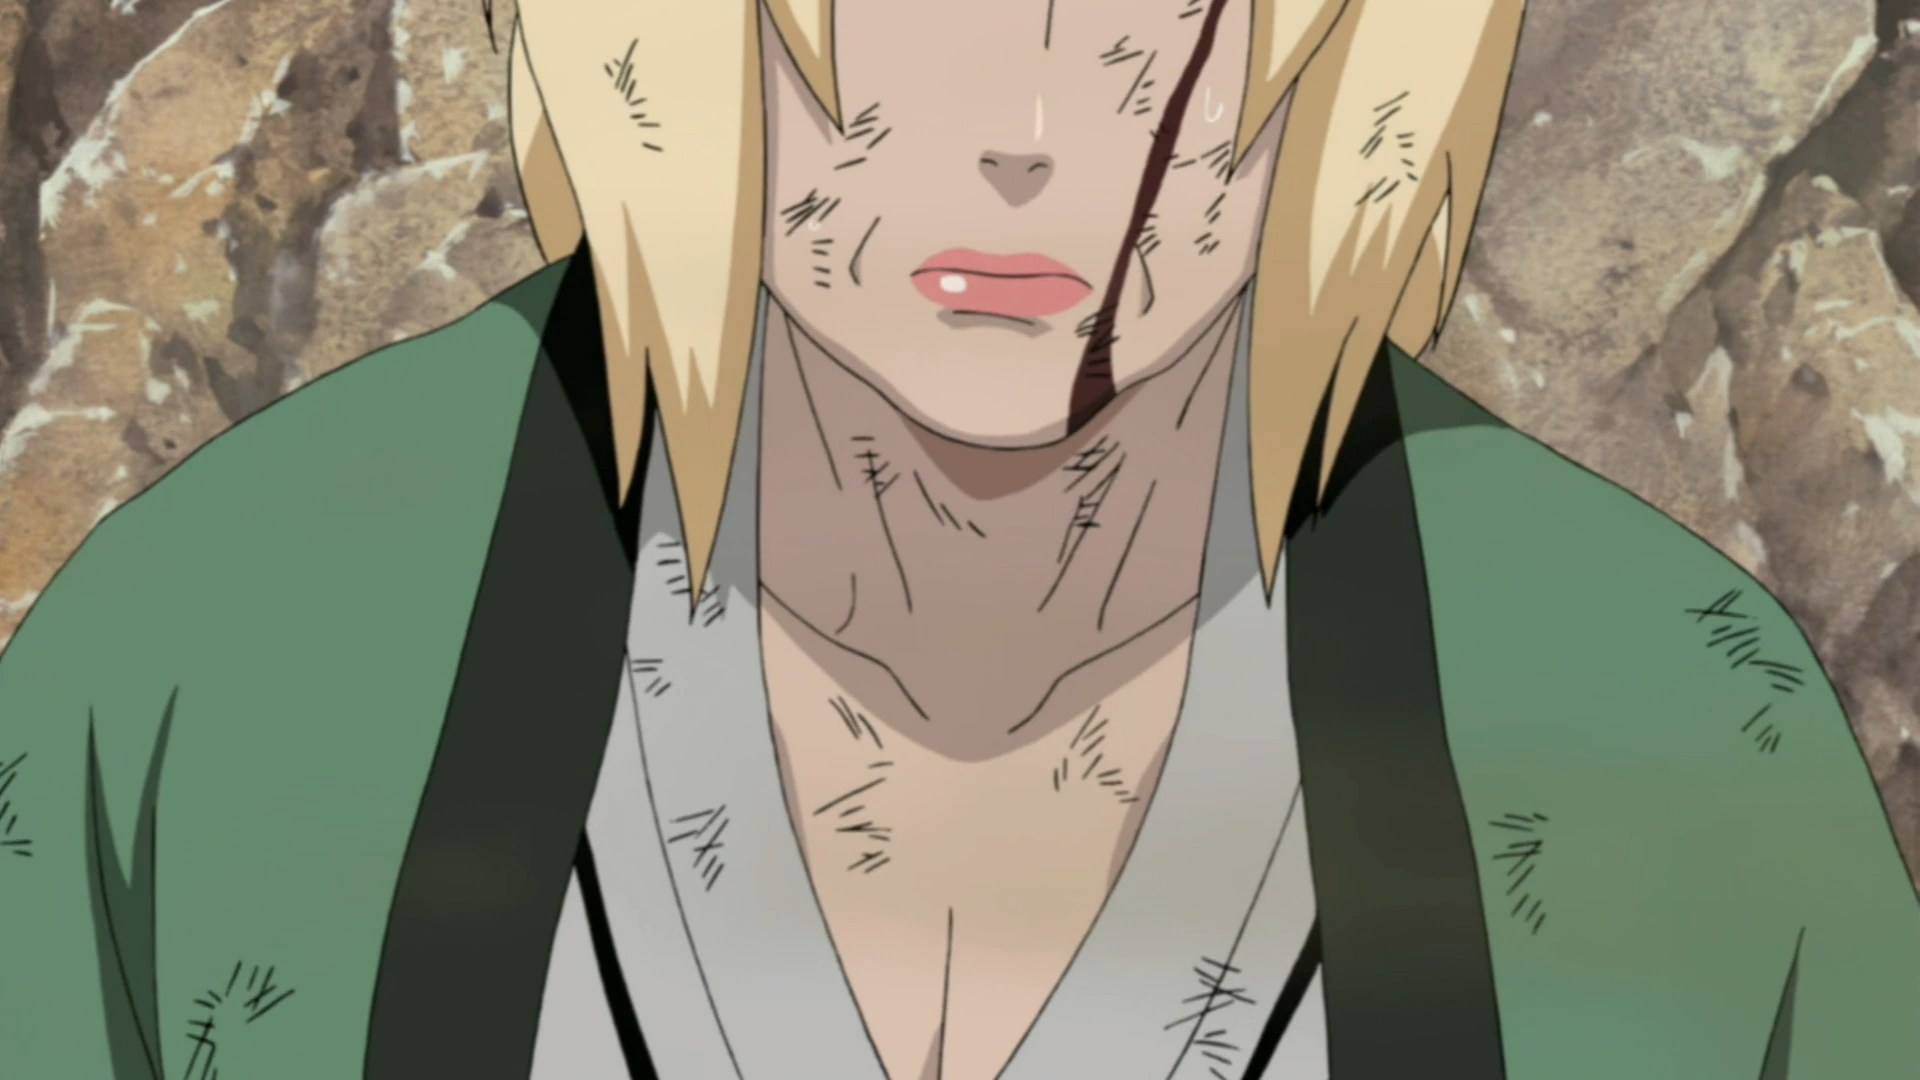 Umvc3 Wallpaper Girls Image Tsunade Ages Png Narutopedia Fandom Powered By